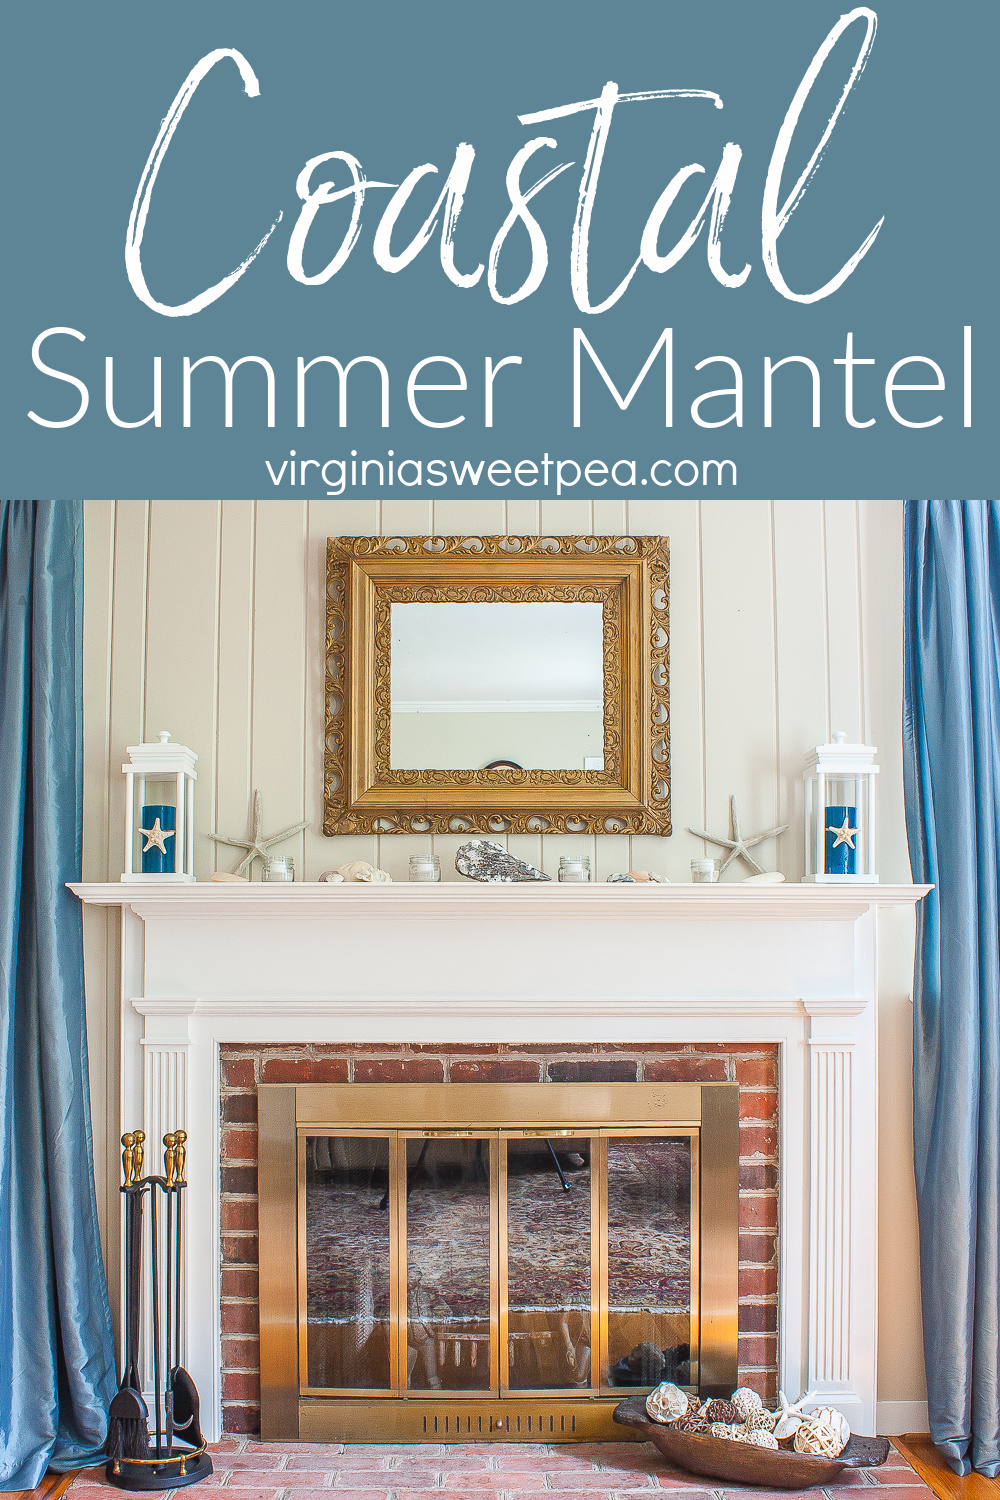 Coastal Summer Mantel - Get ideas for decorating a mantel for summer with a coastal theme.  #summermantel #coastalmantel #coastaldecor via @spaula